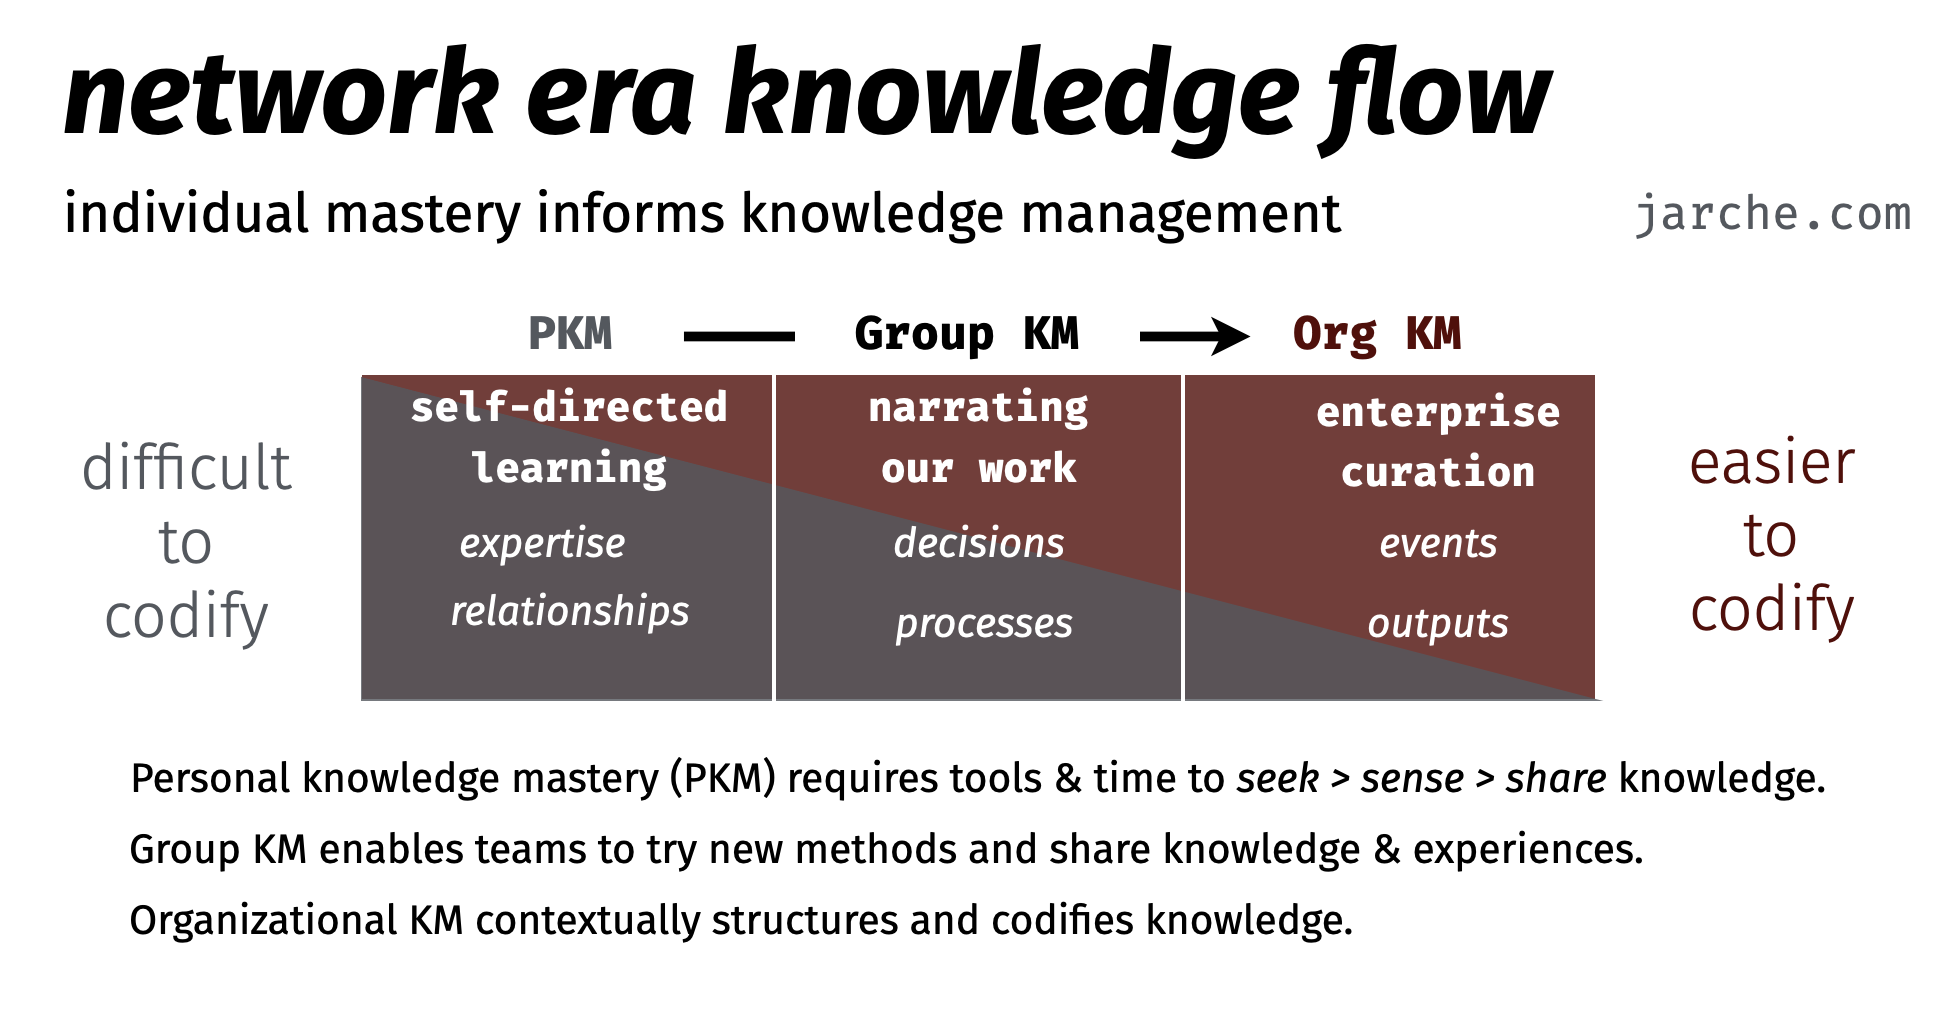 network era knowledge flow from personal mastery to organizational curation